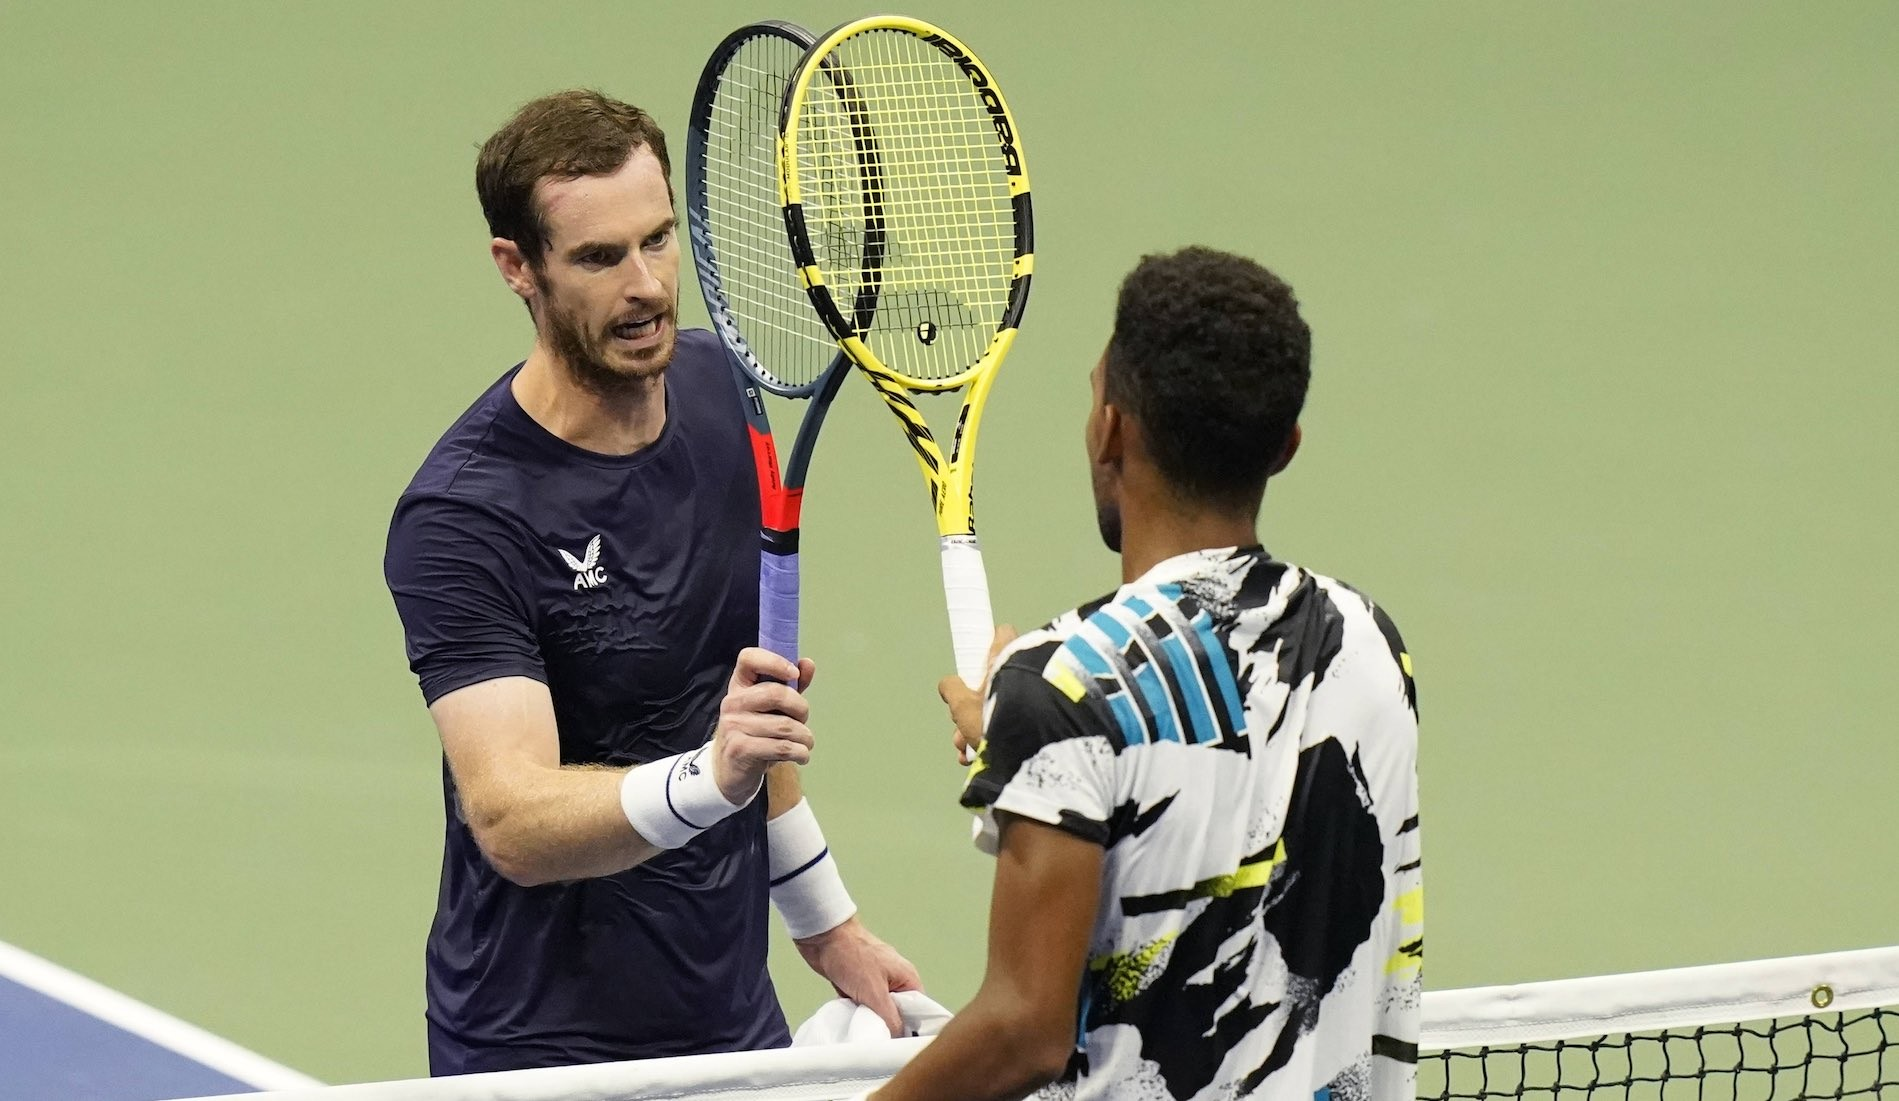 Andy Murray and Felix Auger Aliassime, US Open second round, September 2020